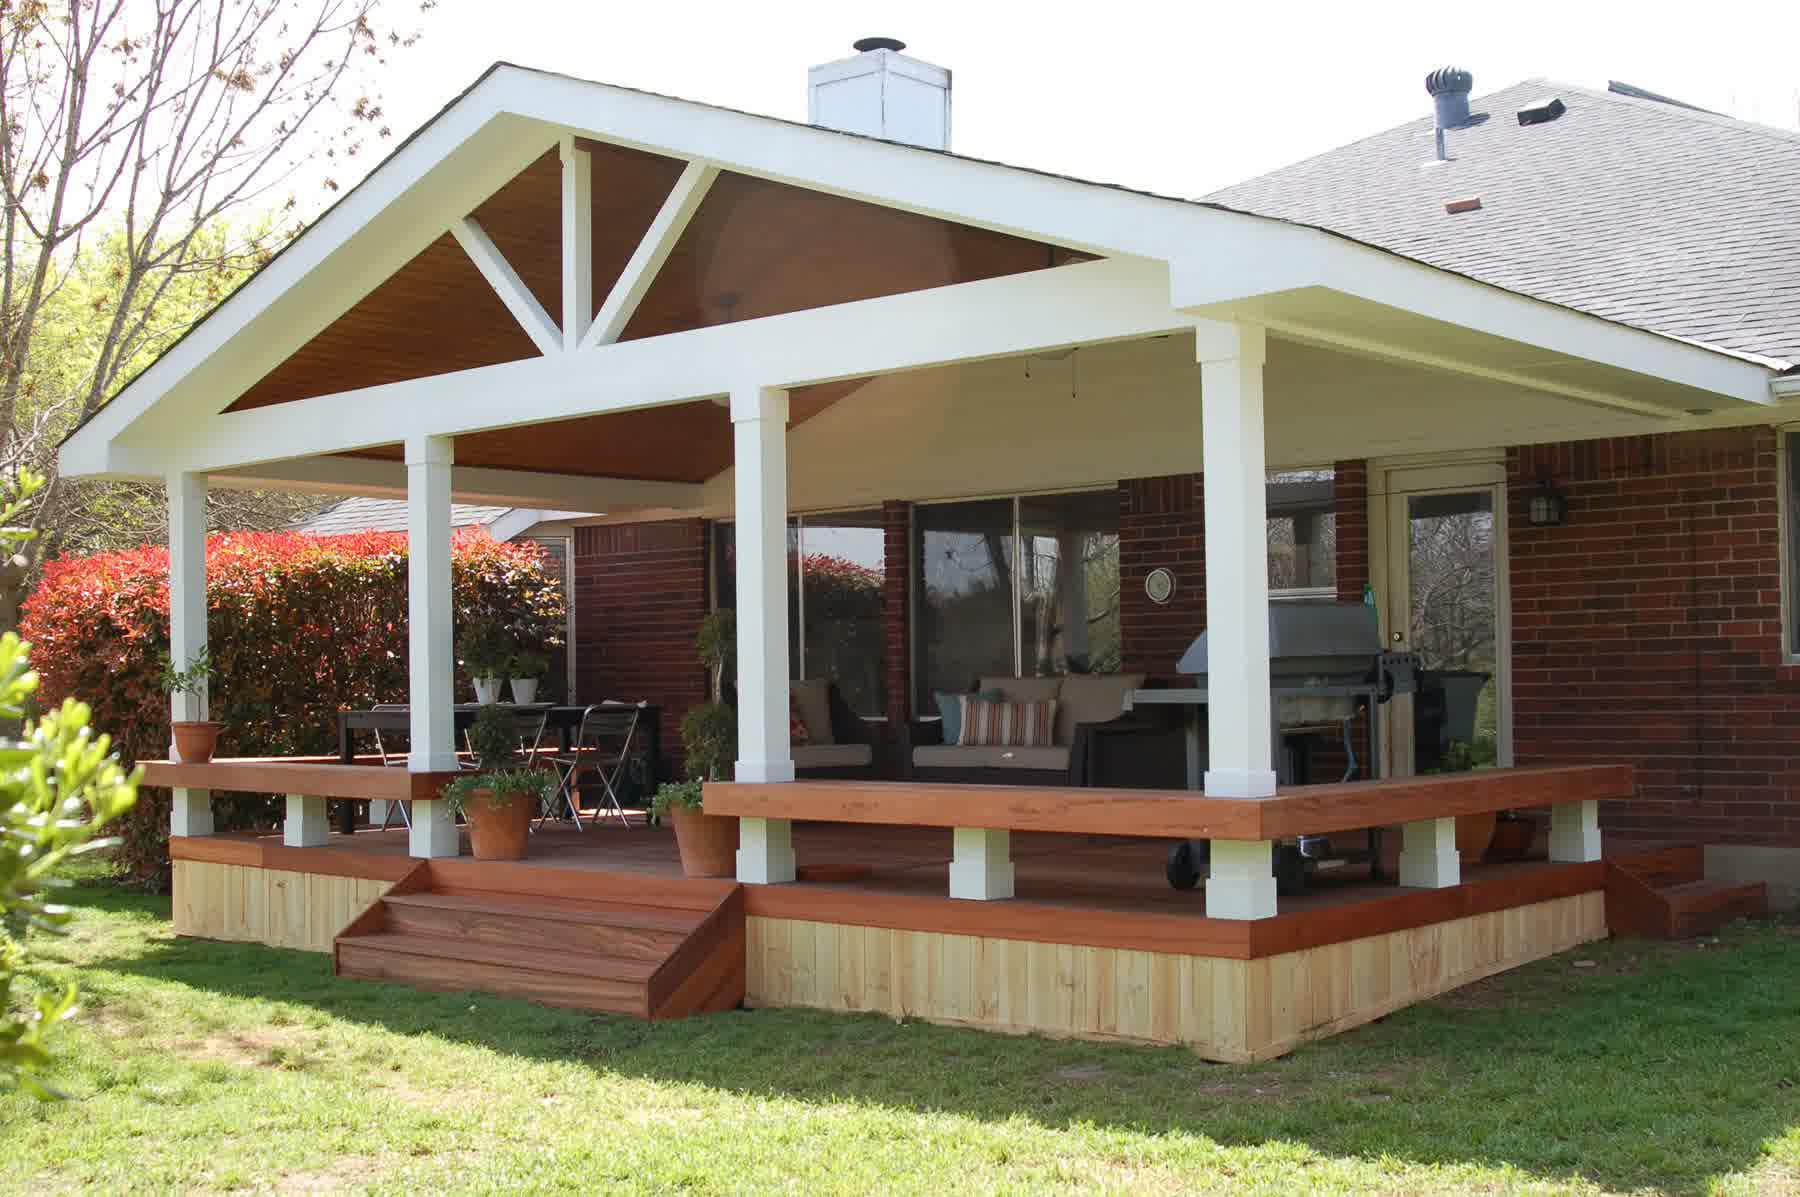 Covered Deck Designs - HomesFeed on Add On Patio Ideas  id=43042